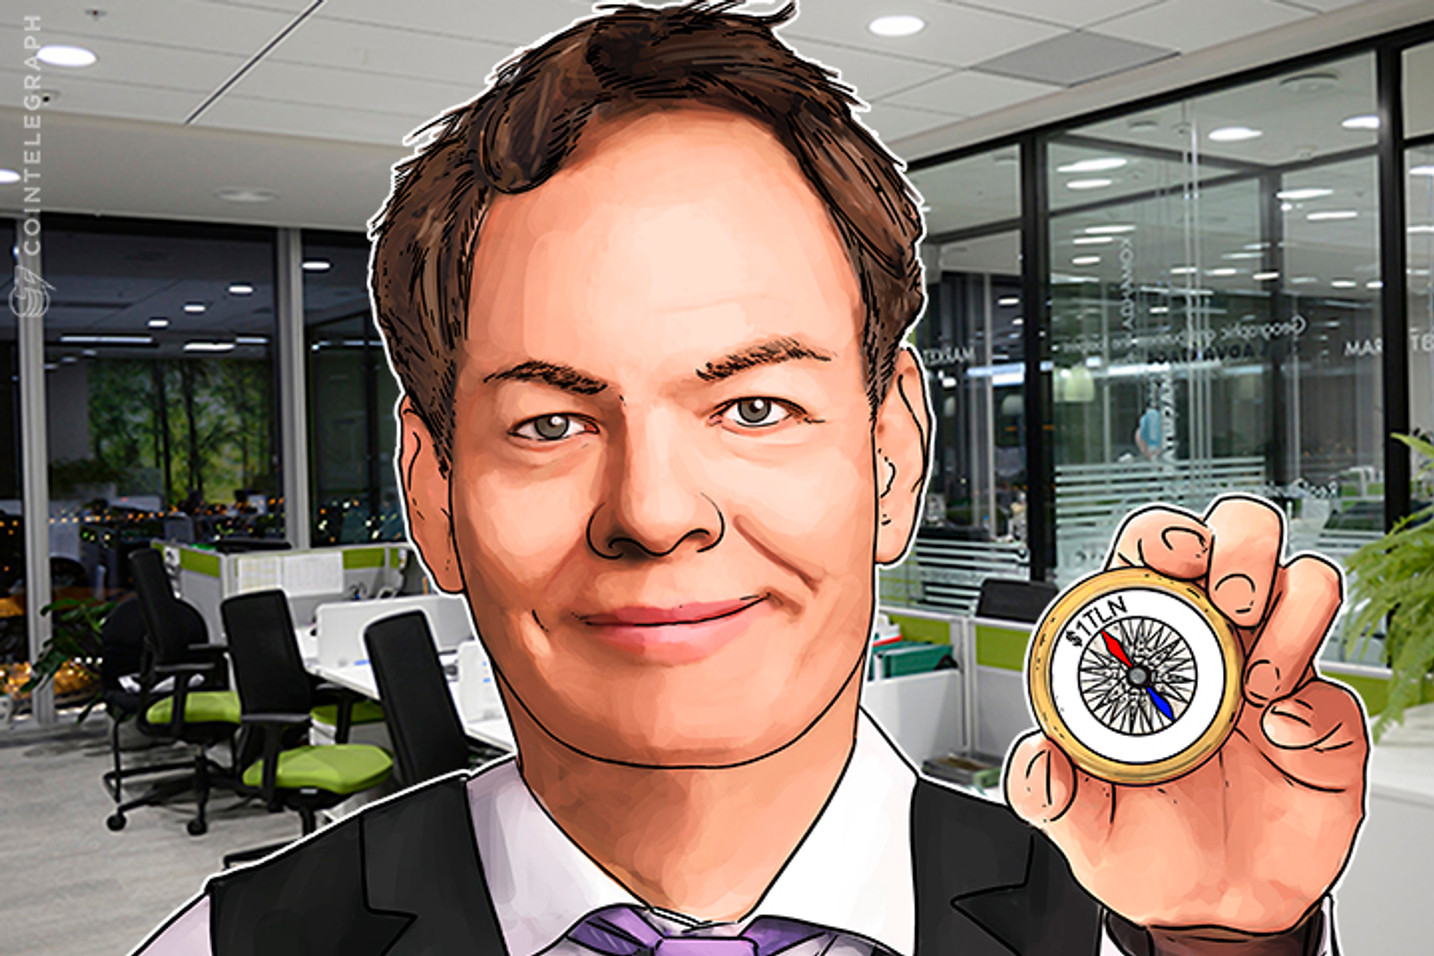 Keiser - Crypto Headed For $1 Tln Market Cap